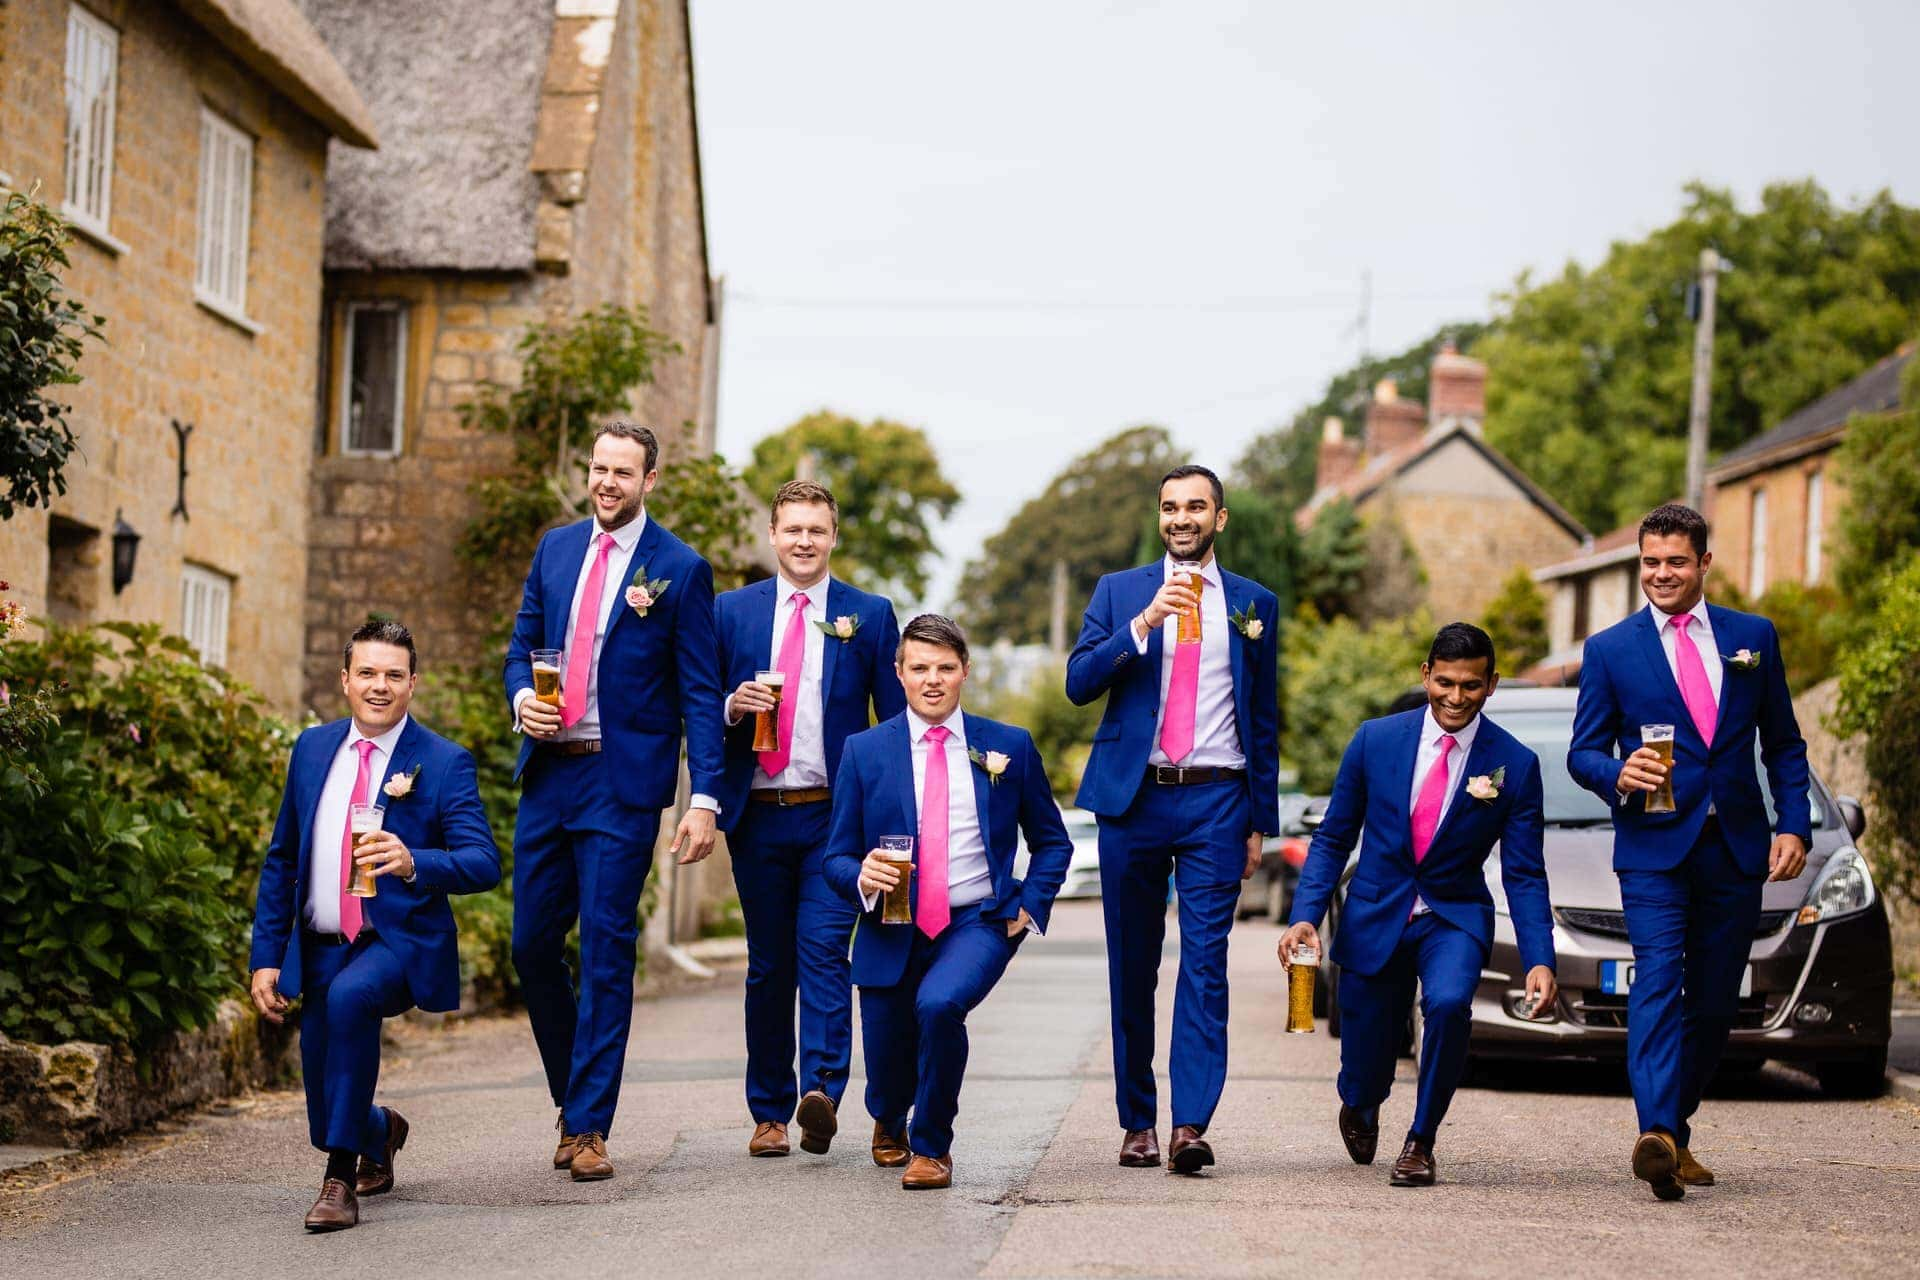 groom beer groomsmen lunging wedding